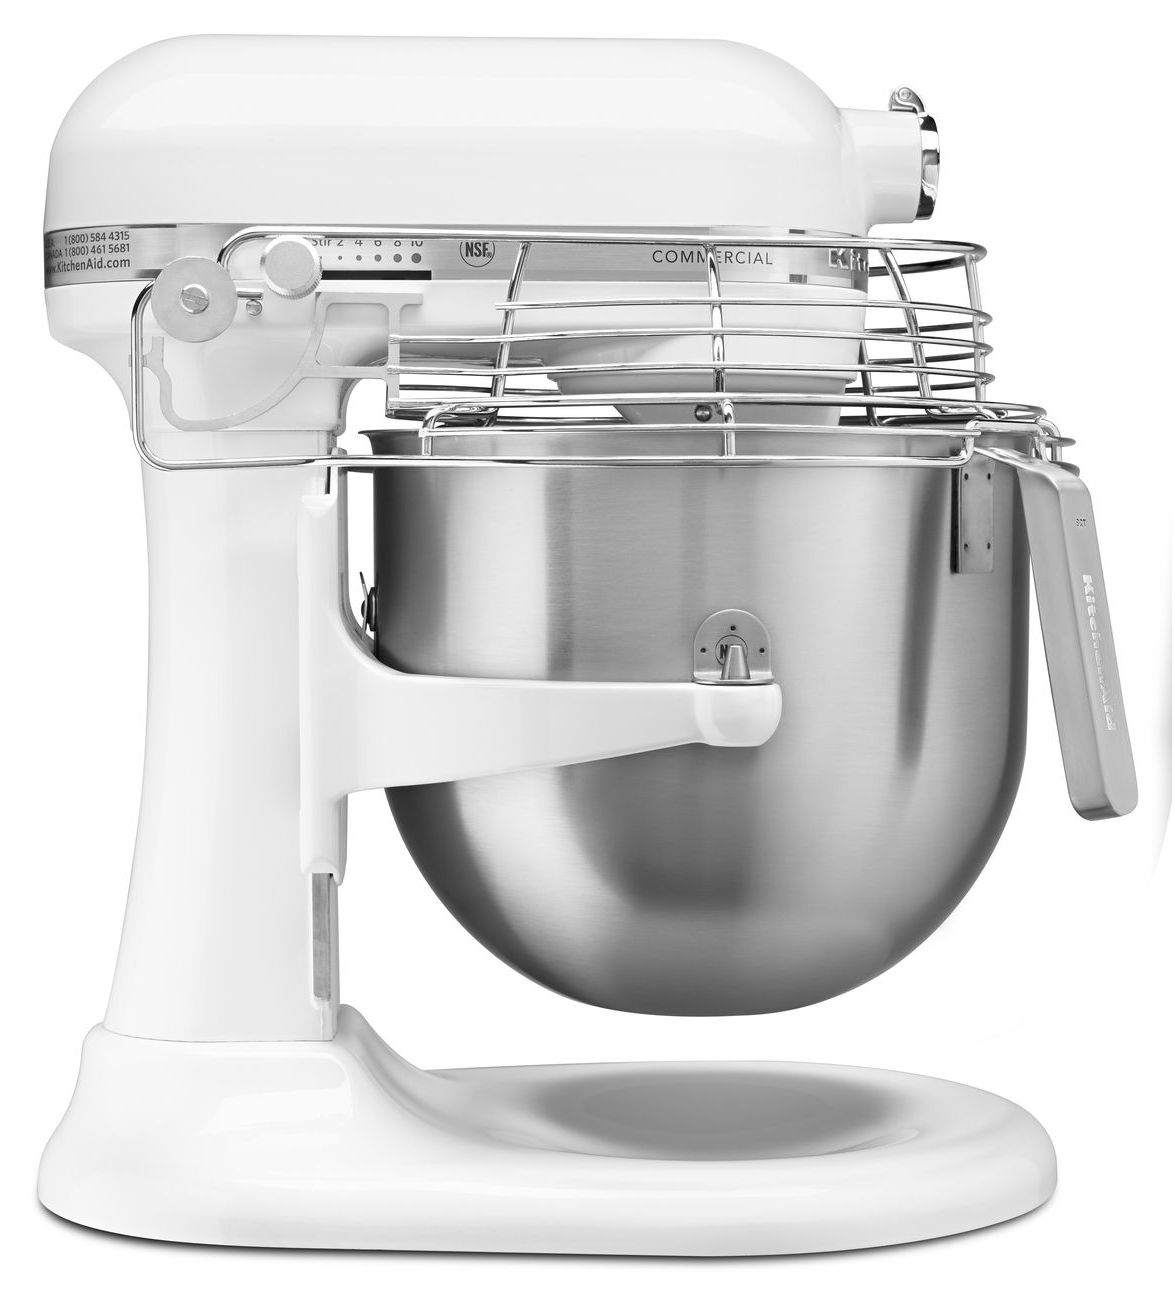 KitchenAid KSMC895 Commercial 8 Quart Mixer With Bowl Guard